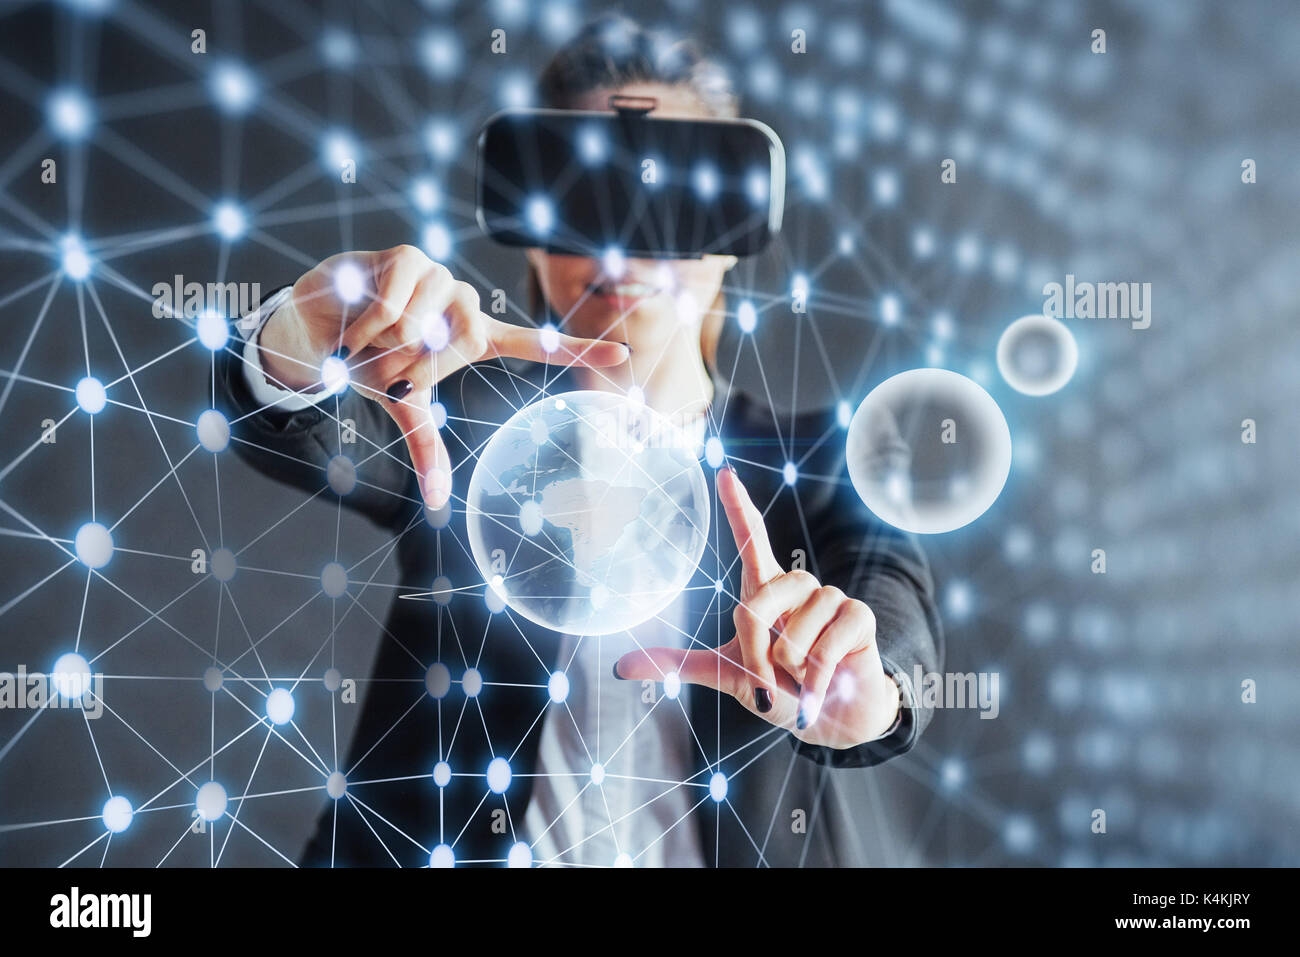 Virtual reality, 3D-technologies, cyberspace, science and people concept - happy woman in 3d glasses touching projection molecules. - Stock Image